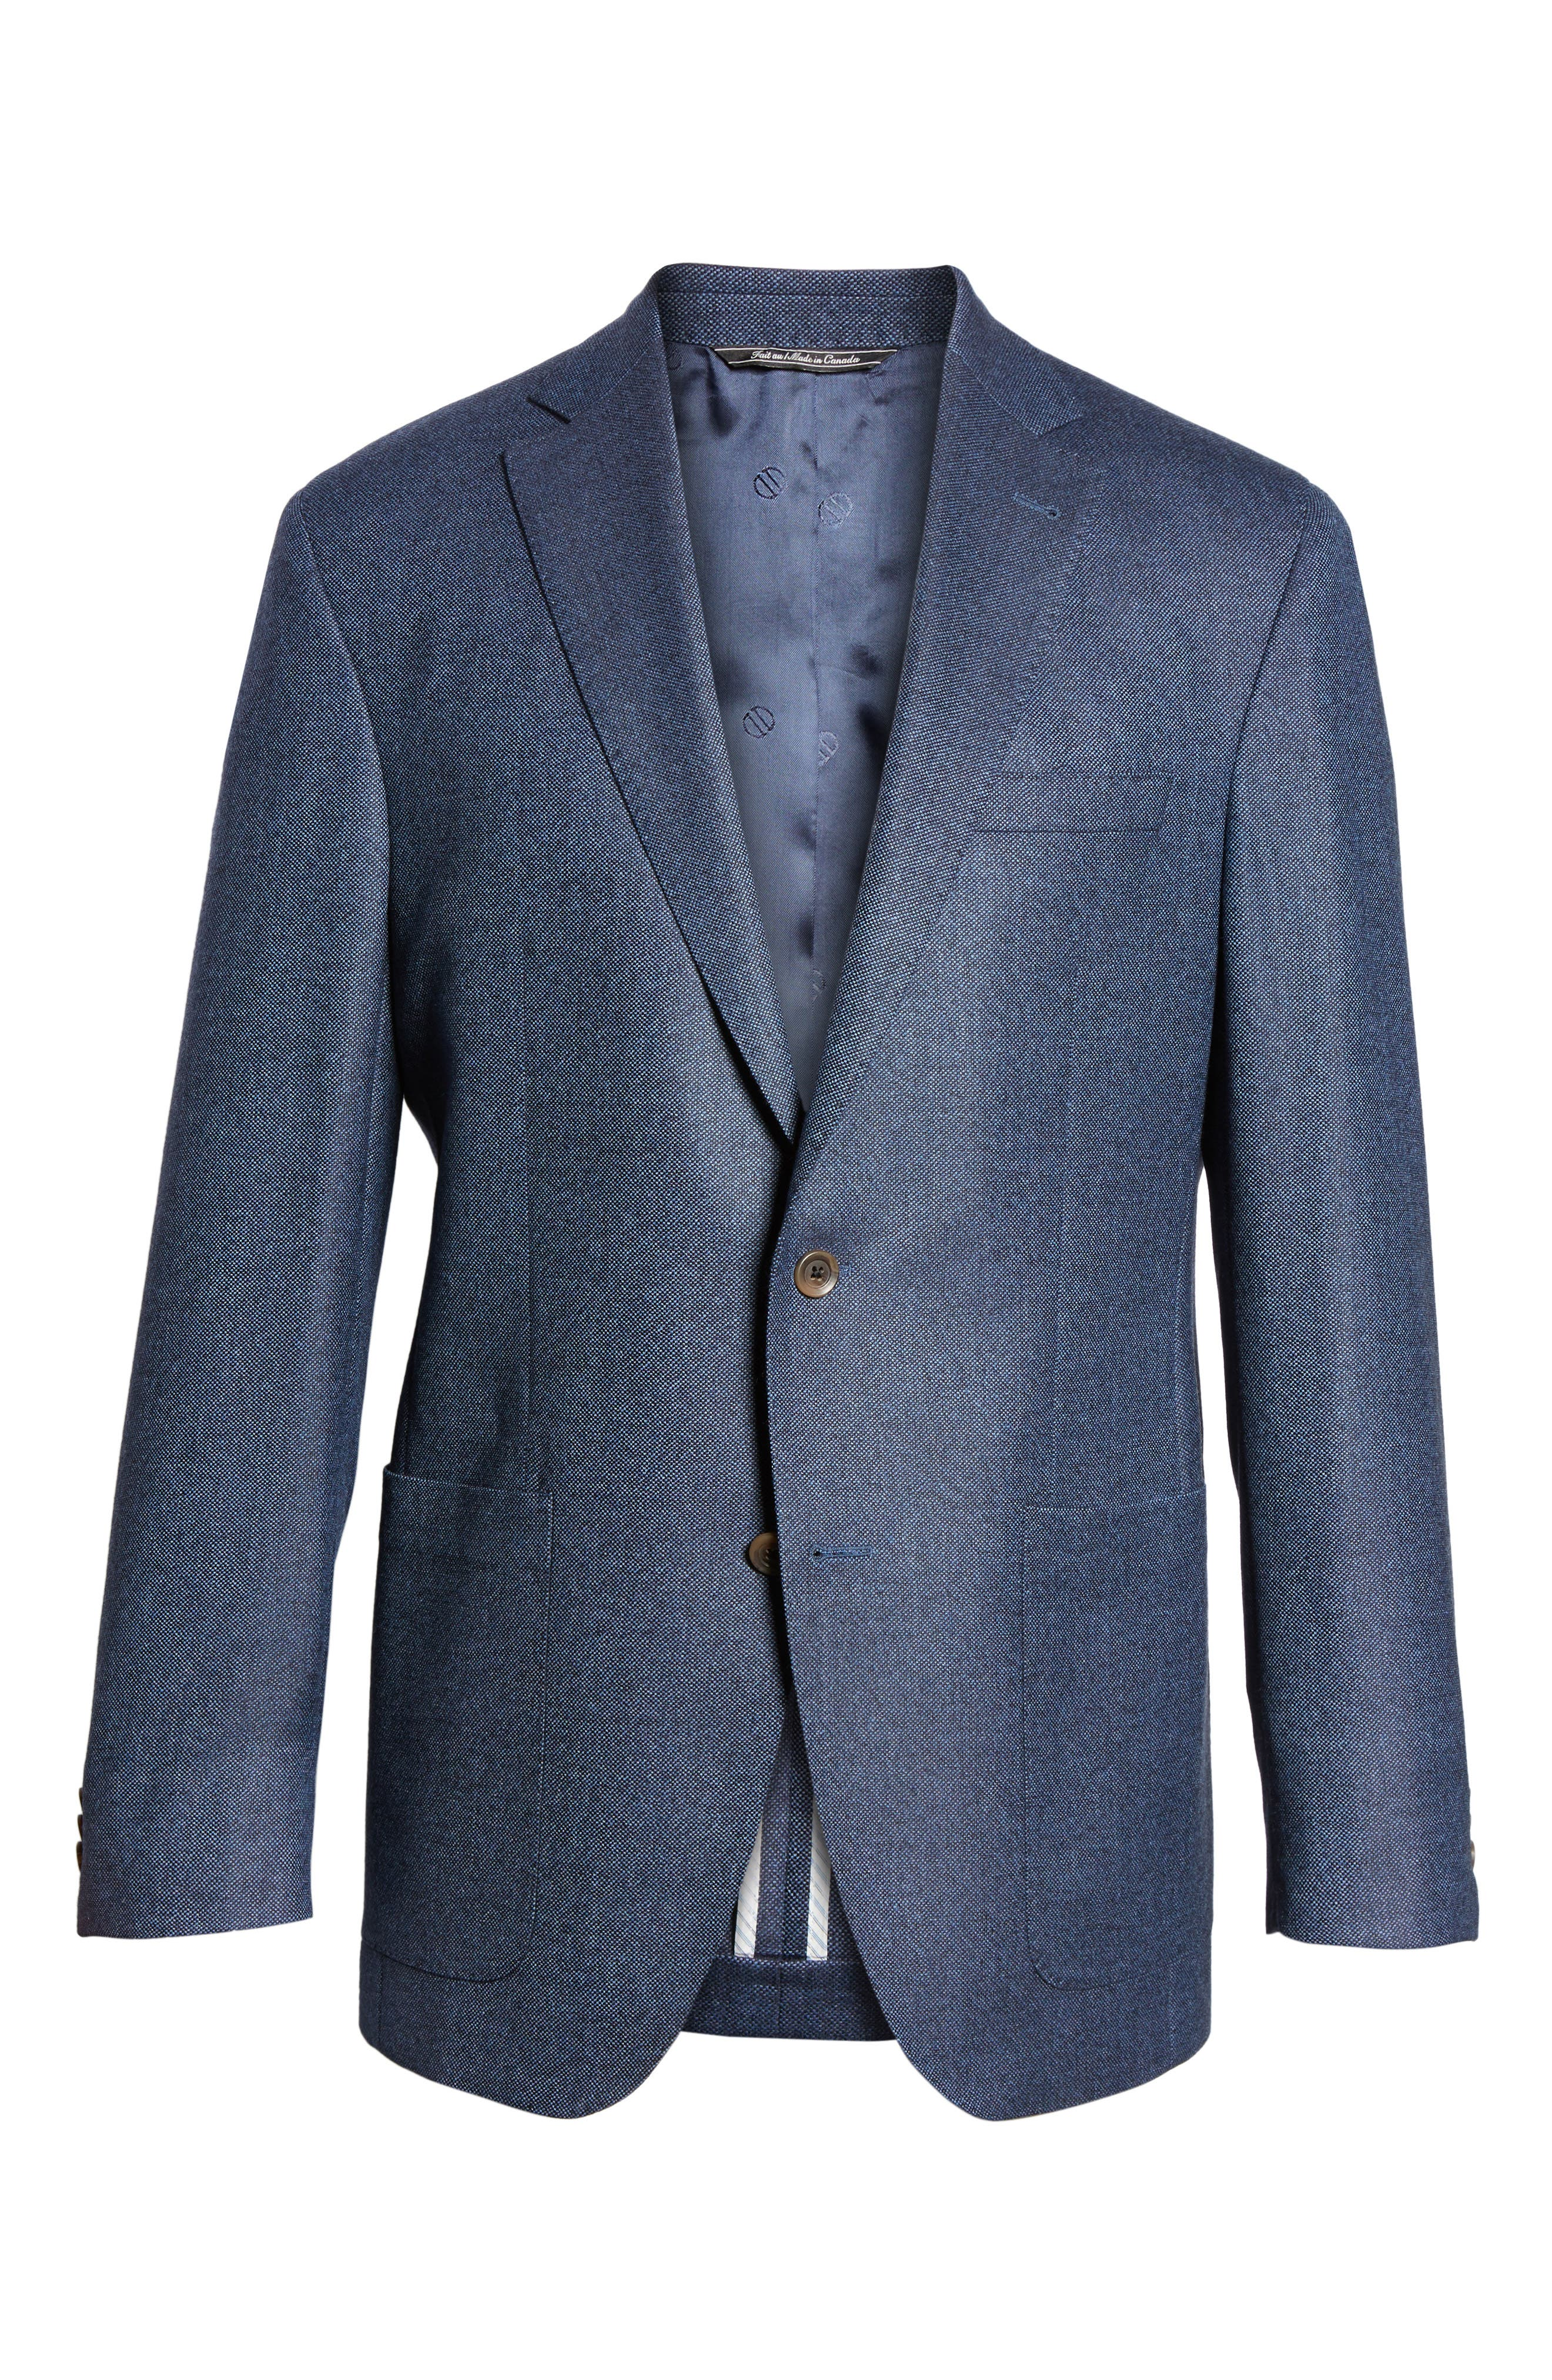 Aiden Classic Fit Wool Blazer,                             Alternate thumbnail 5, color,                             400